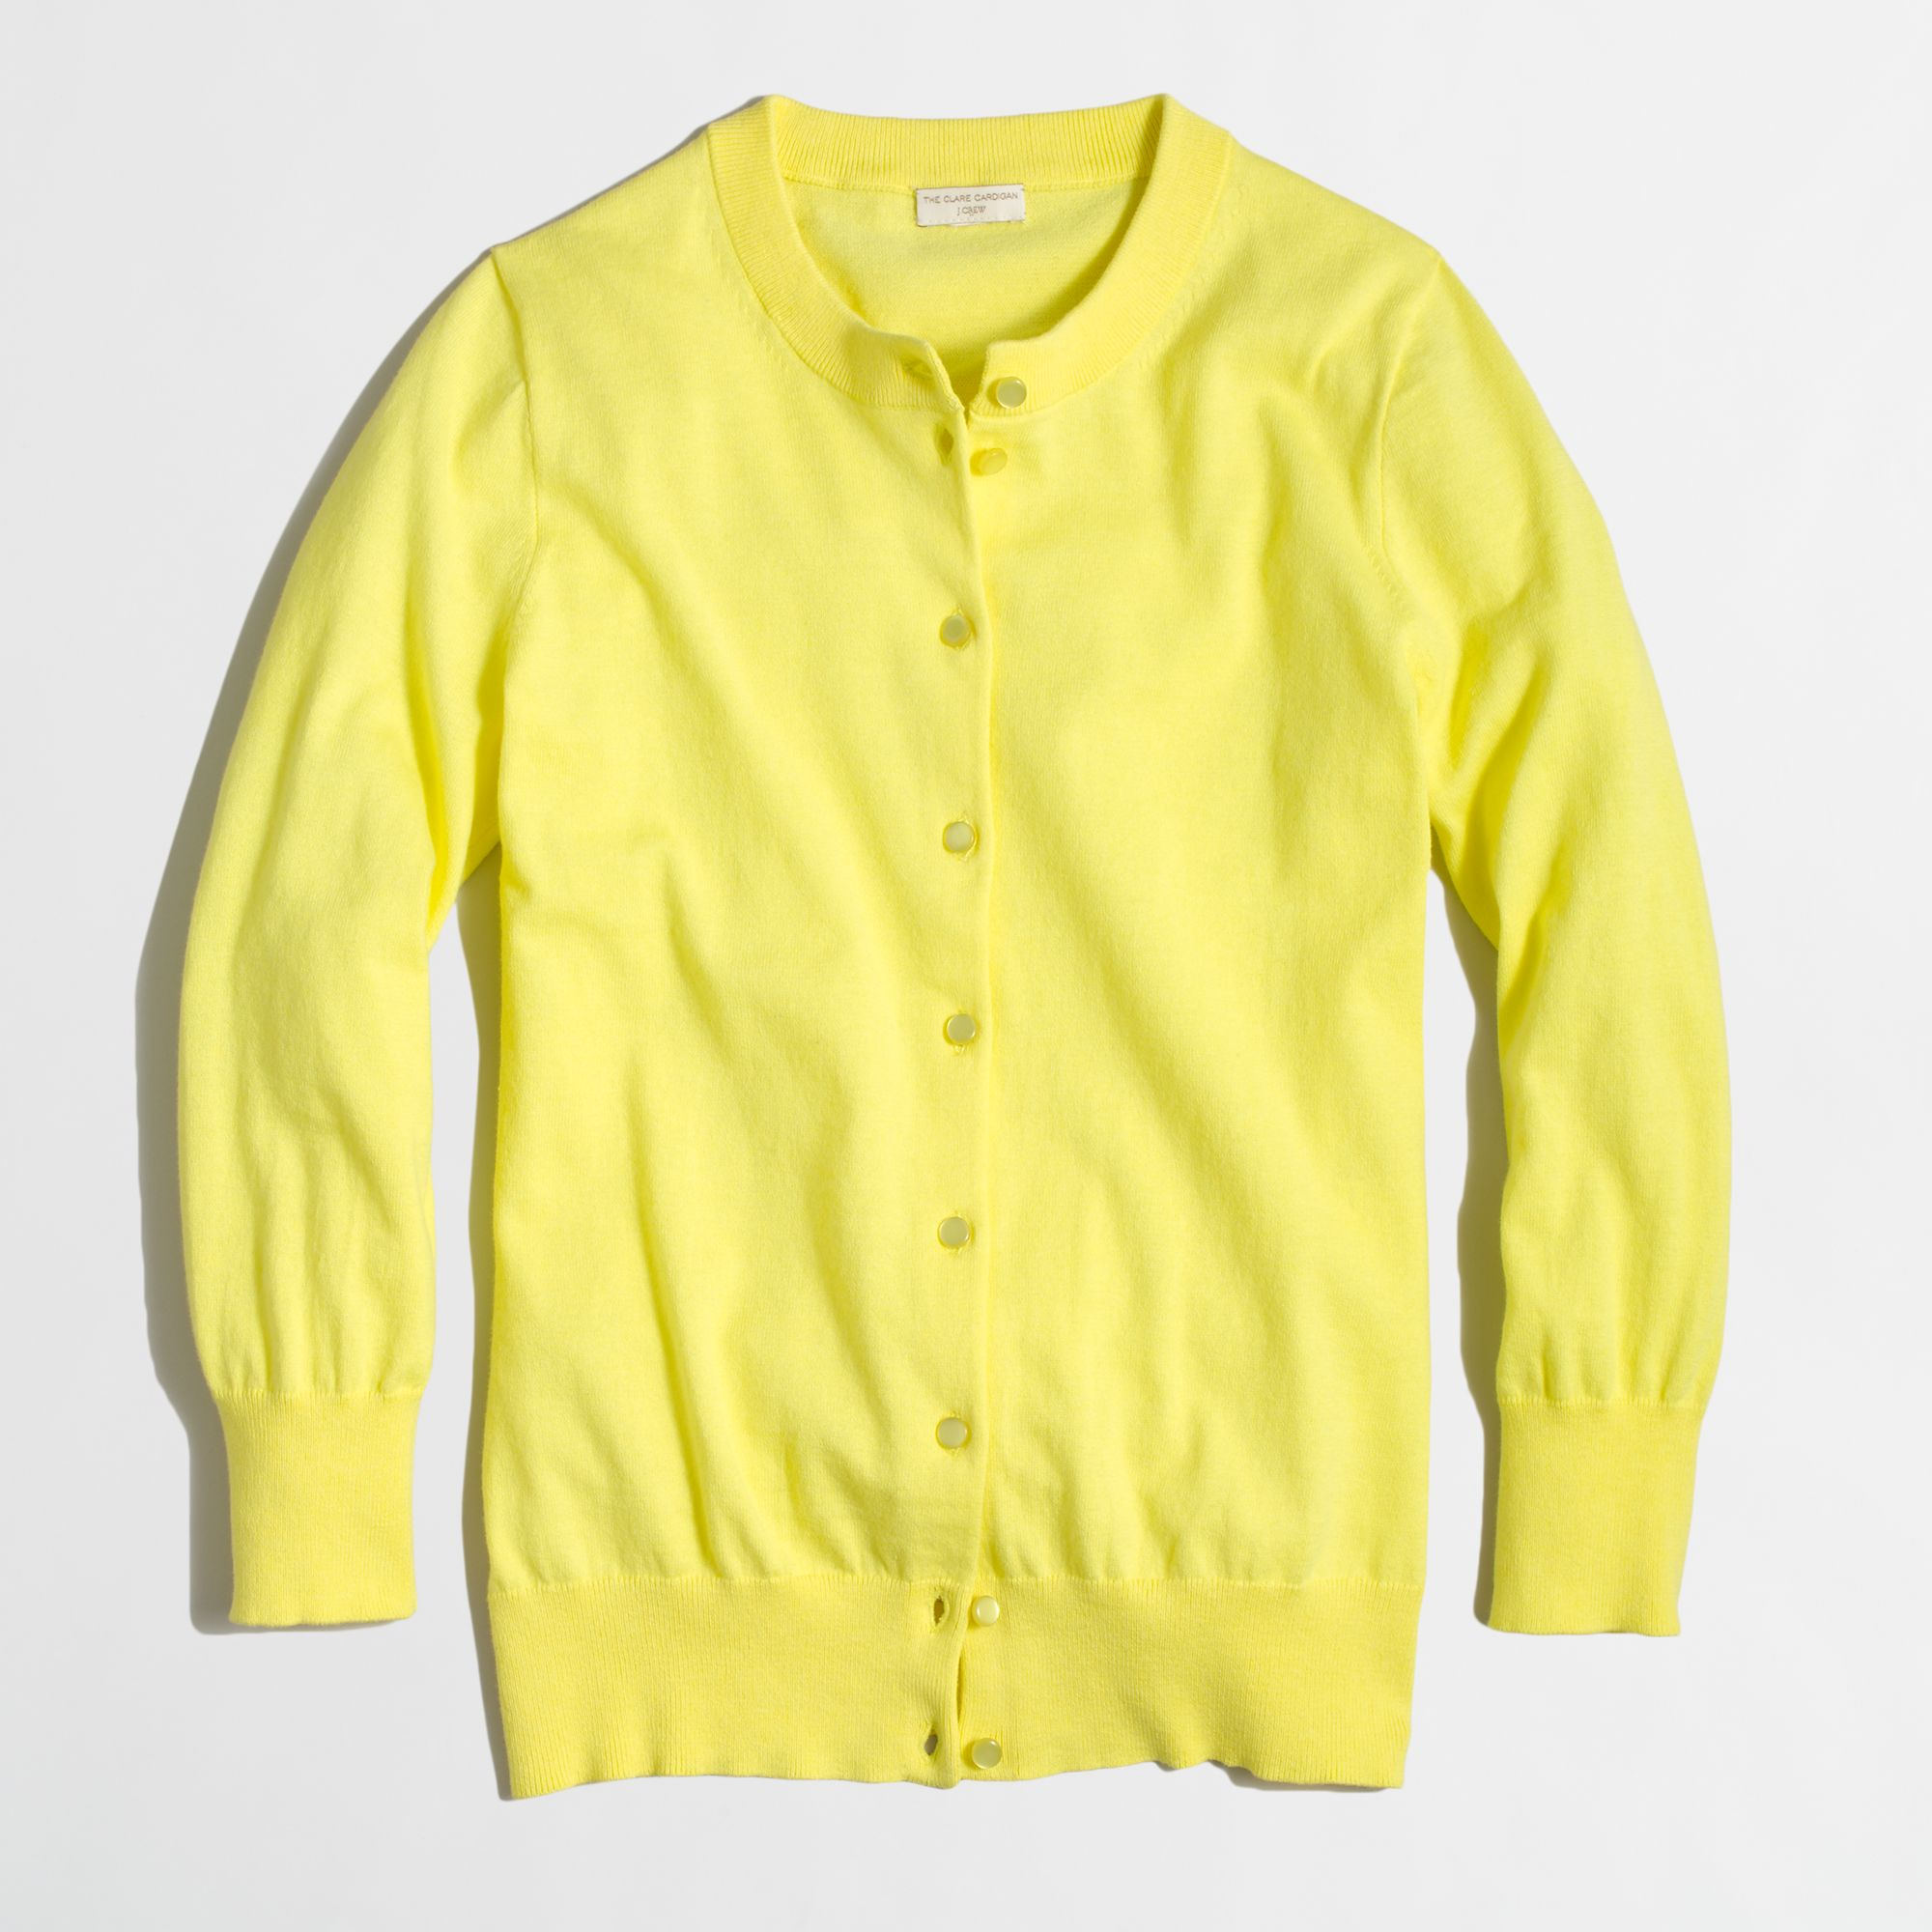 J.crew Factory Clare Cardigan in Yellow | Lyst